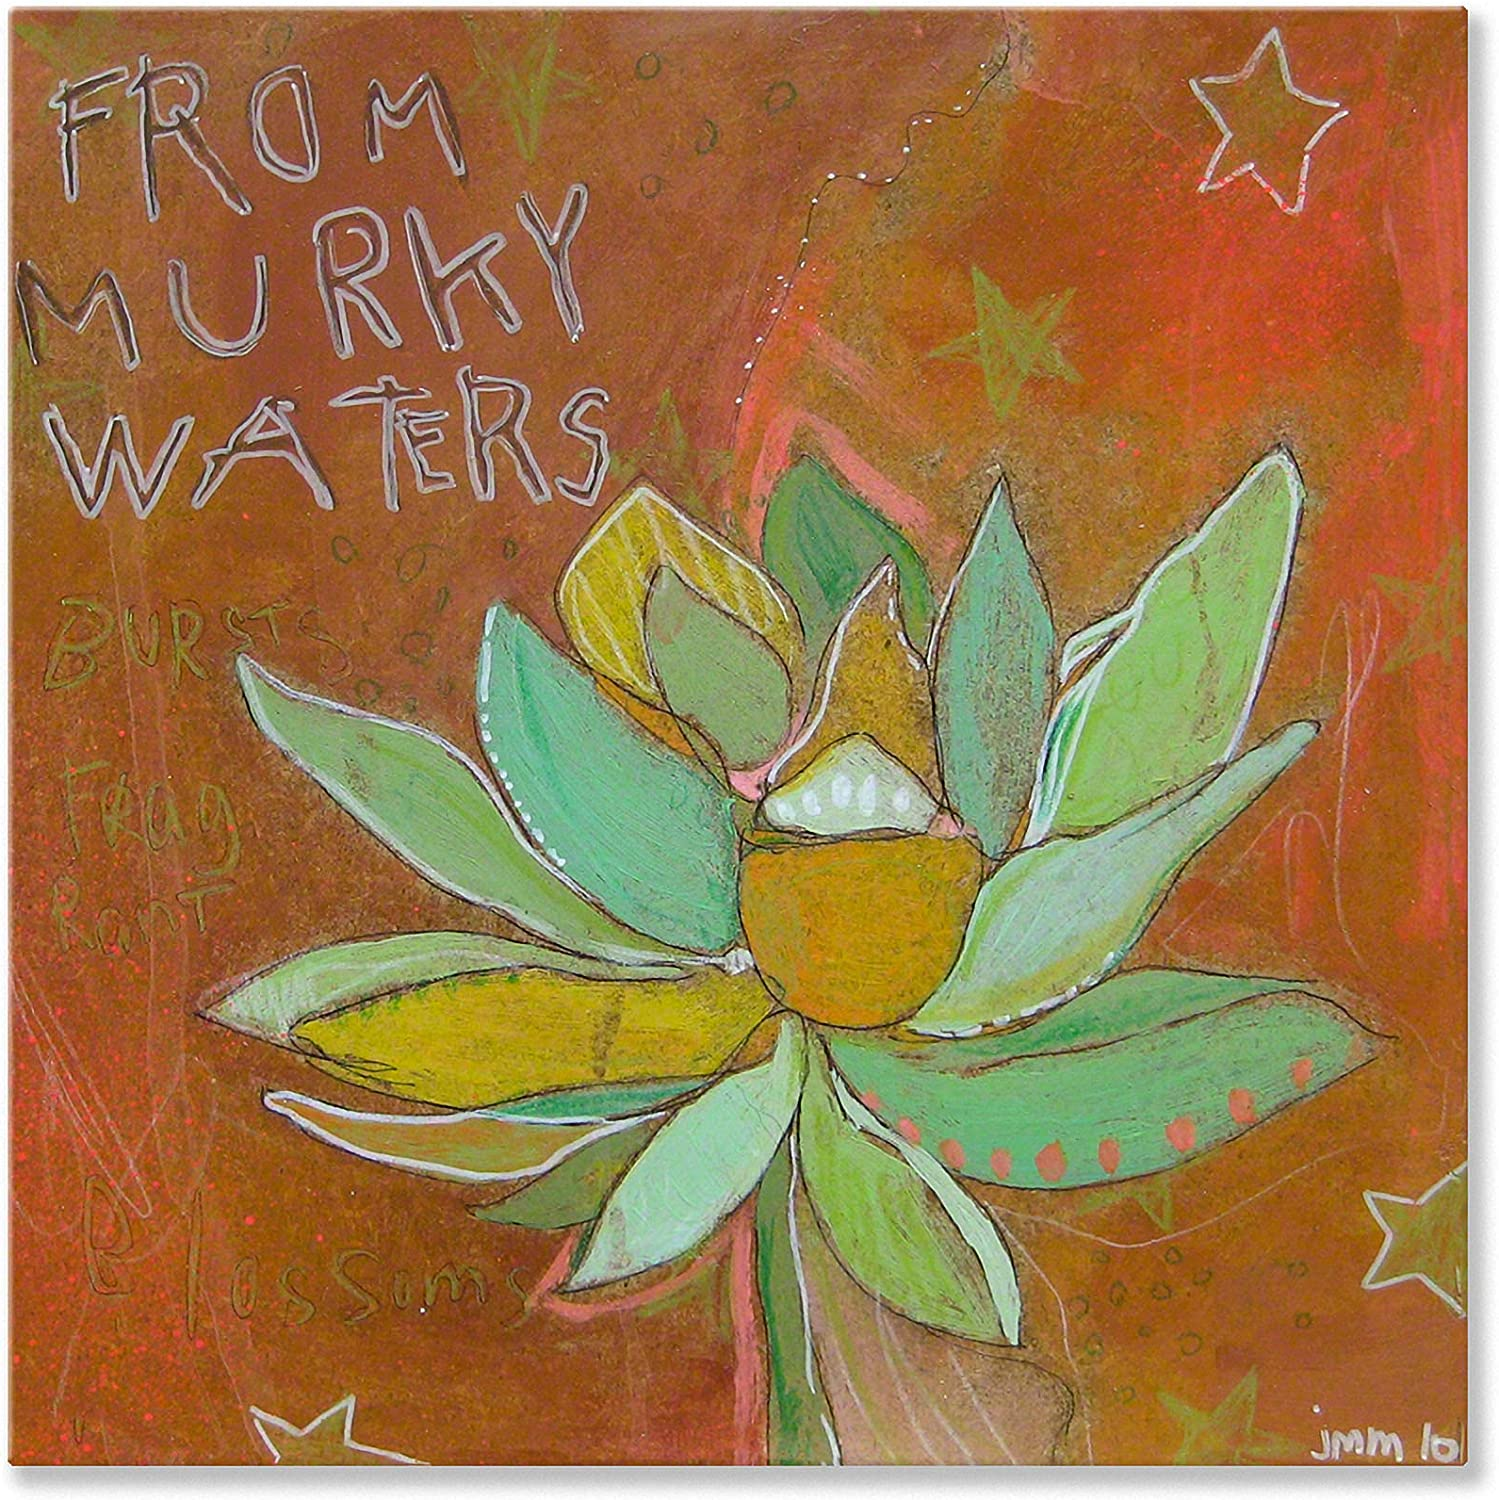 Wheatpaste Lotus Murky Canvas Wall Art, 18x18, Brown